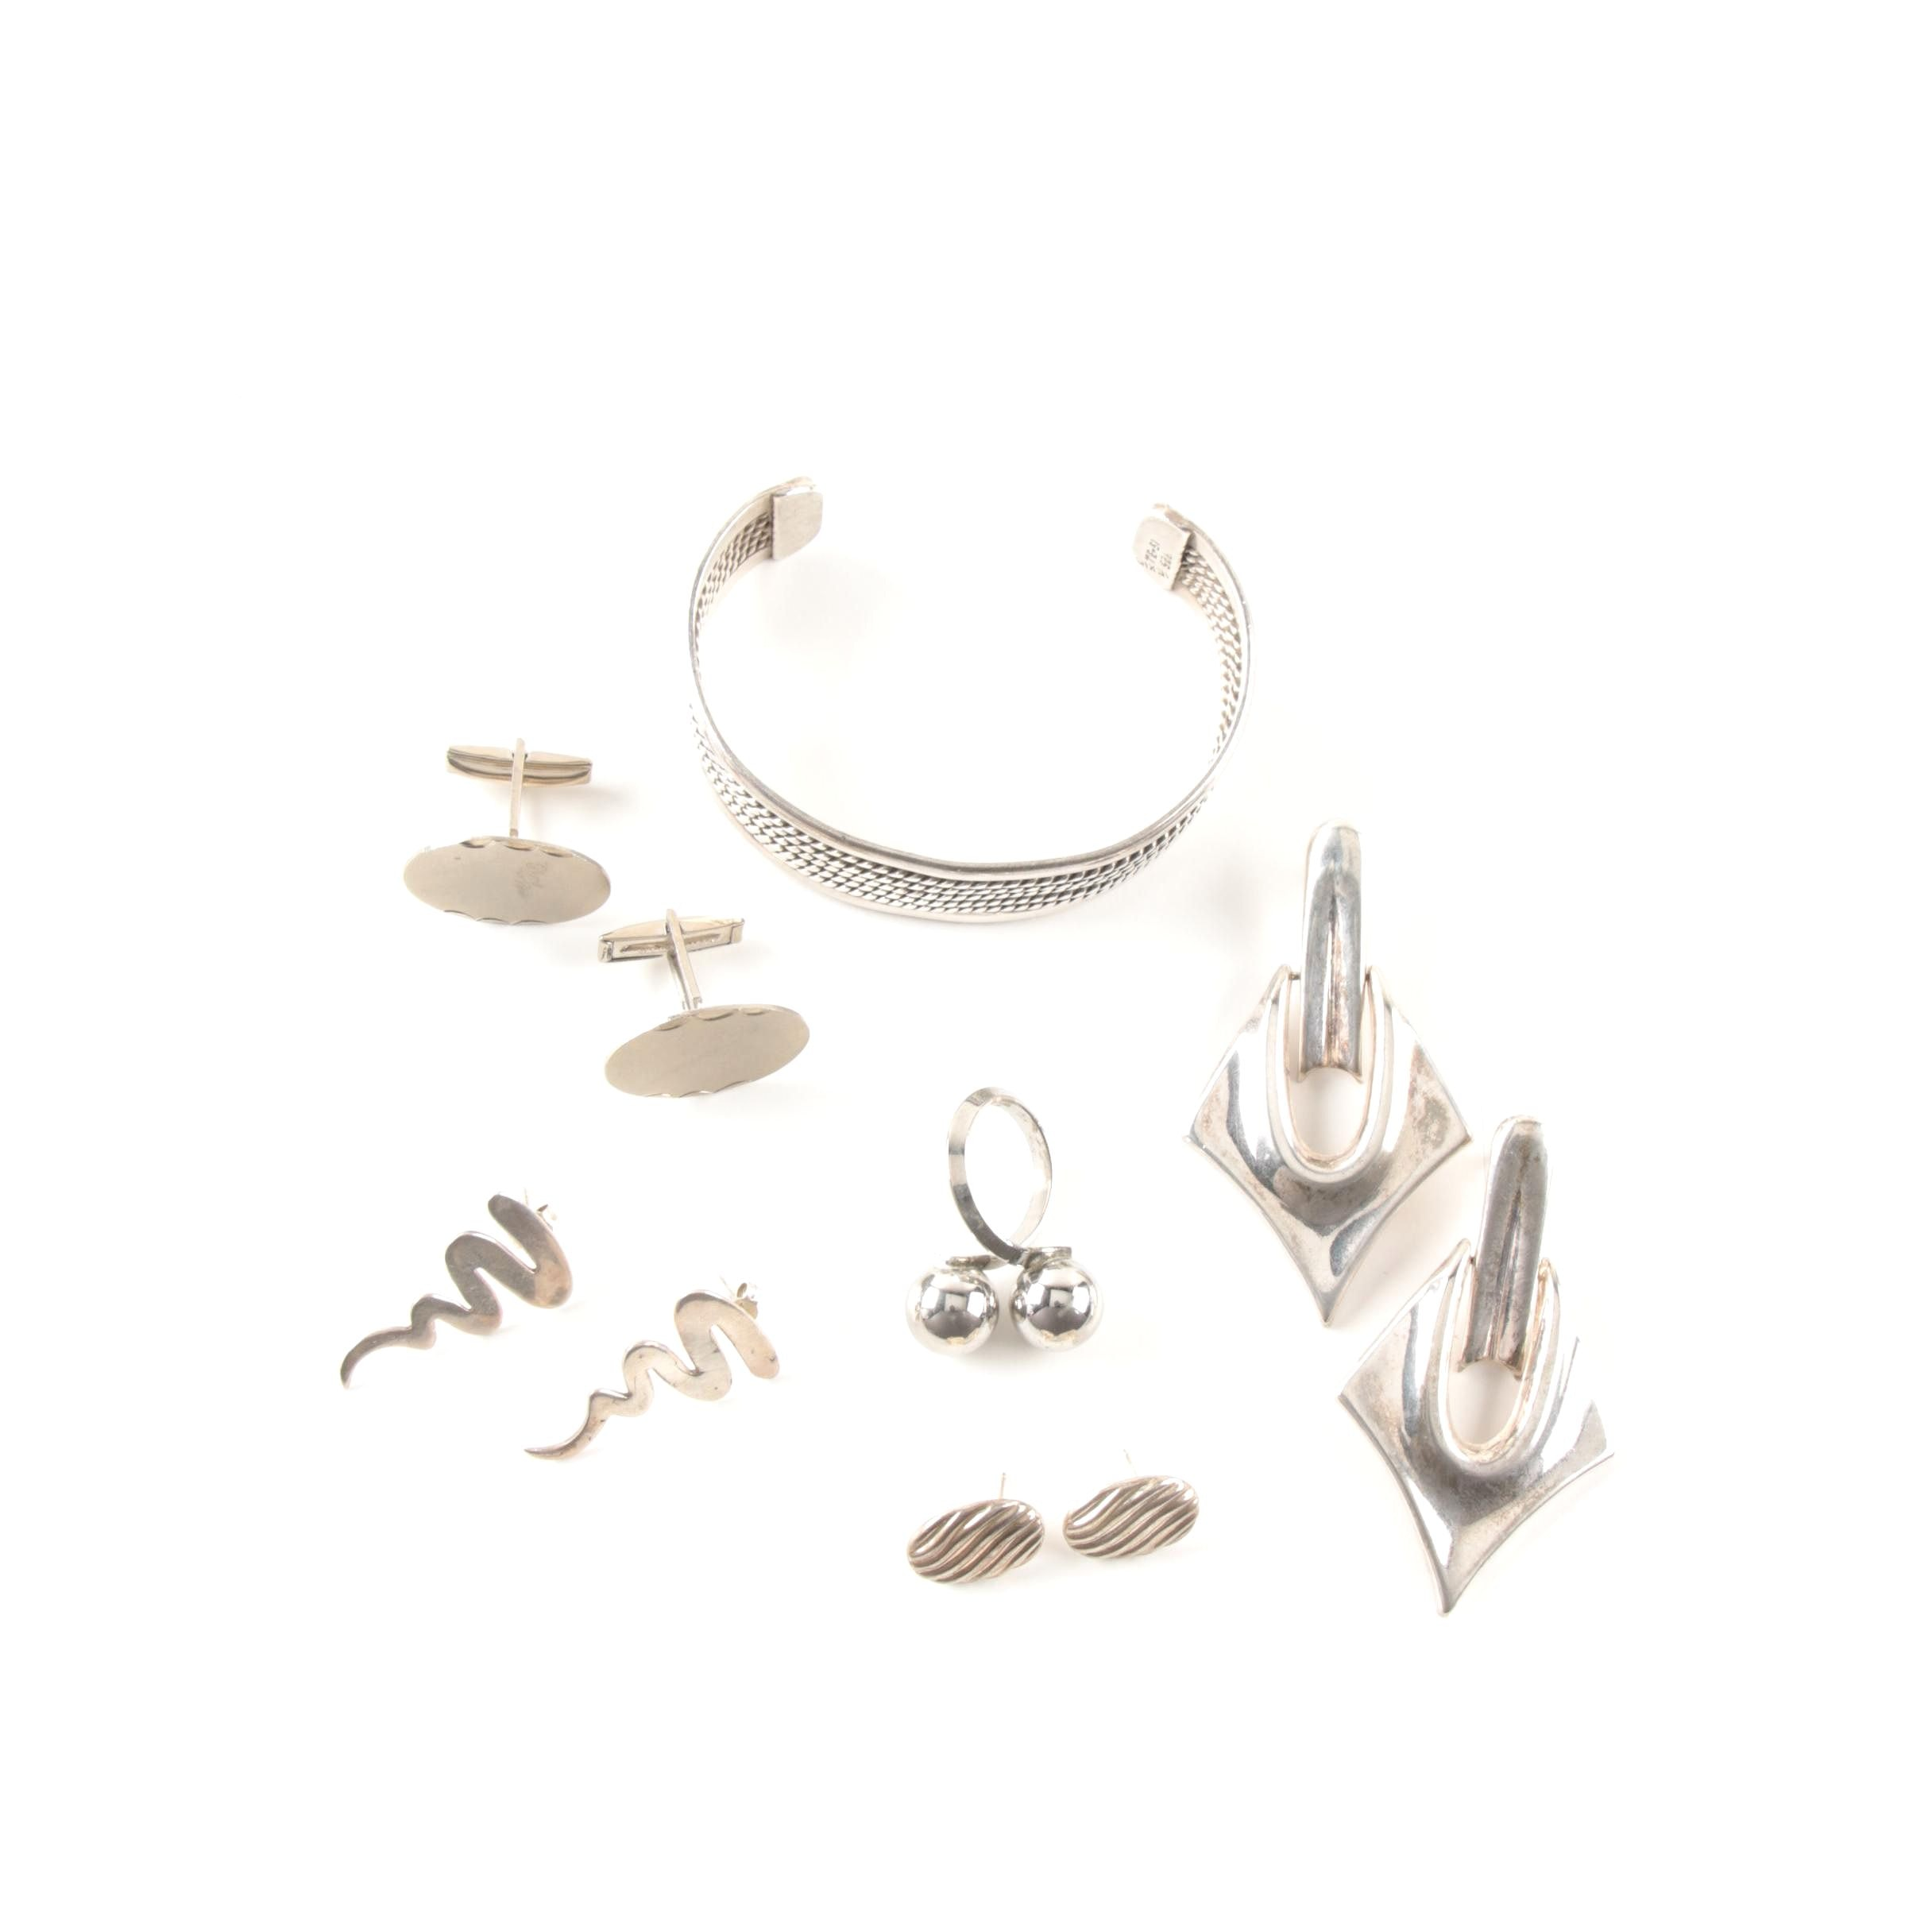 Sterling Silver Jewelry Including a Beau Bypass Ring and Taxco Cuff Bracelet